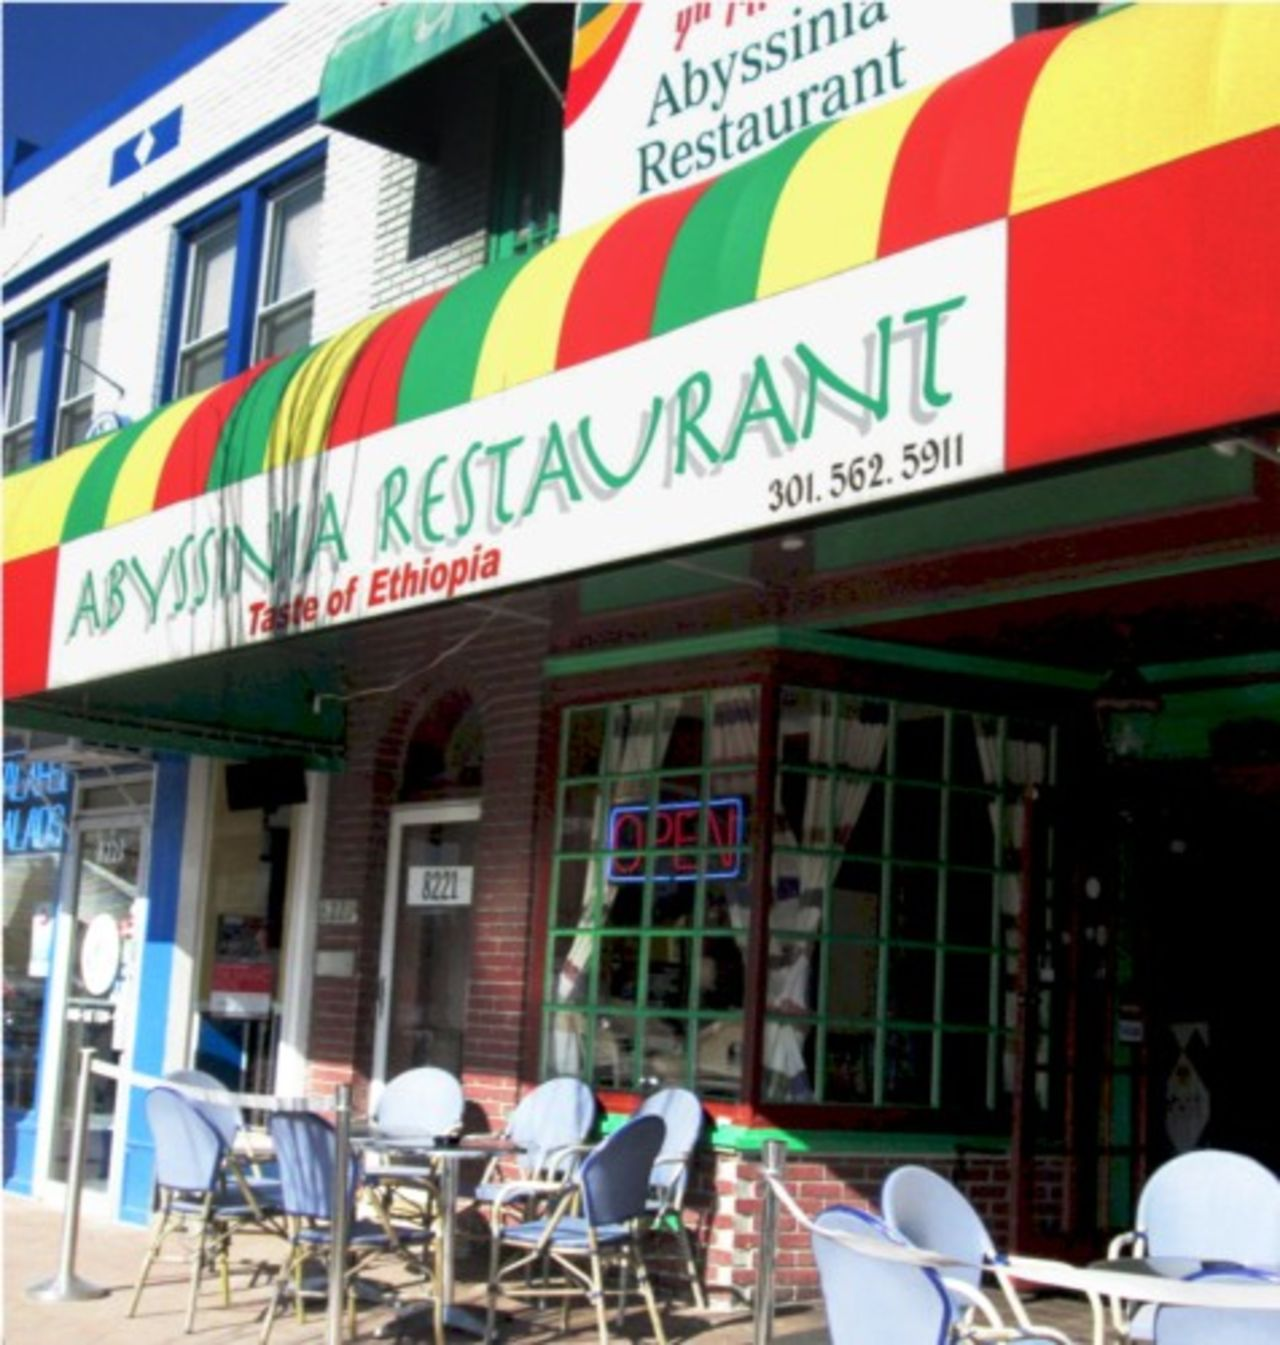 A photo of Abyssinia Restaurant